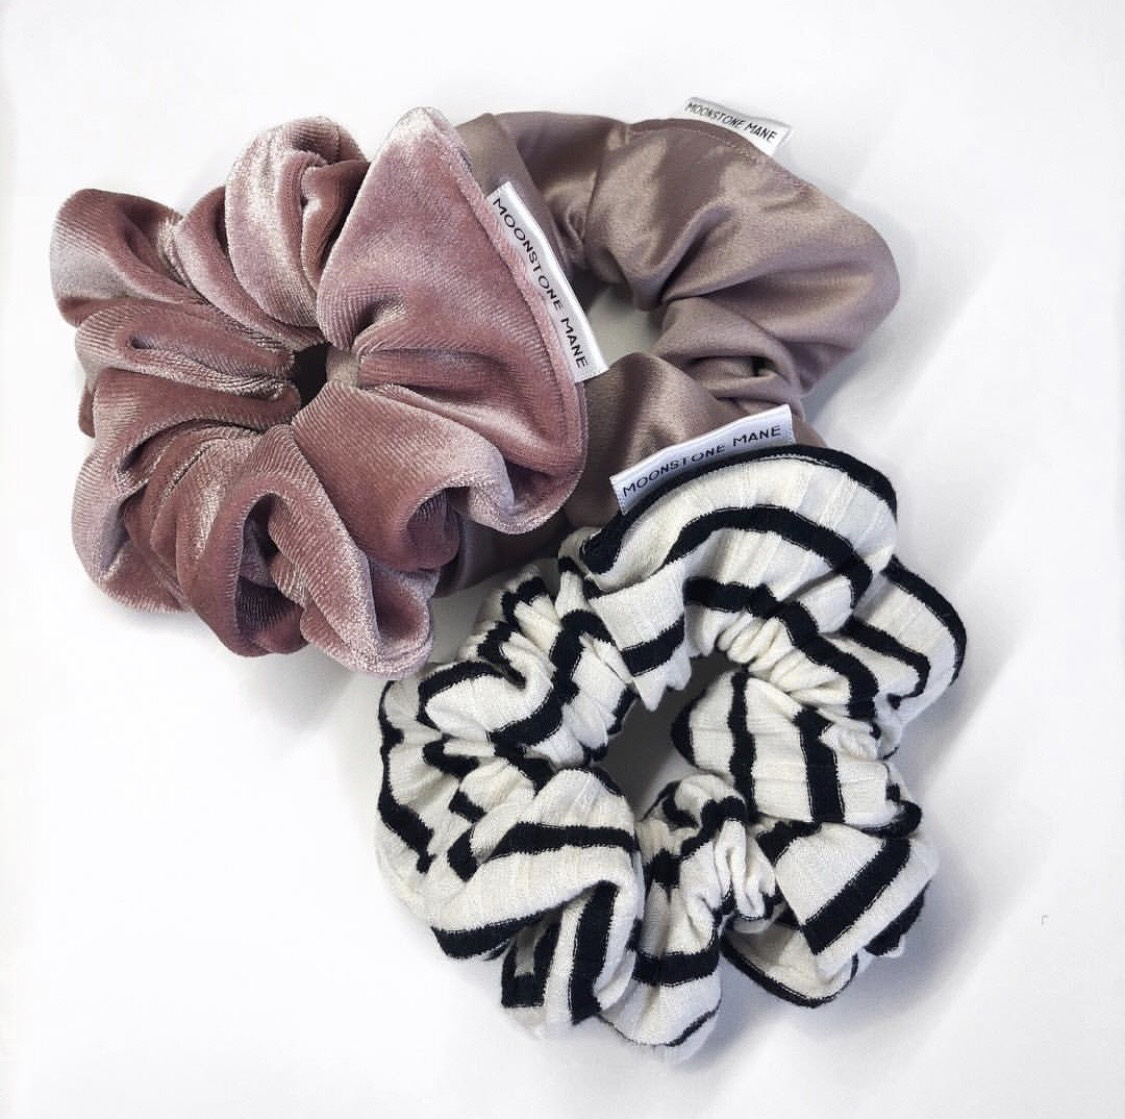 Scrunchies - This is something new for the holiday season! We are very excited to announce that we have partnered up with Moonstone Mane and will have their scrunchies in the studio in under two weeks! Moonstone Mane is an Edmonton-based company that started up in August 2018. We are so excited to have their scrunchies in our studio soon- these will come in all sorts of colours, patterns, and fabrics to pretty up your top knot! There will always be different designs coming out as they locally source all of their materials they use. Support local this year with this perfect stocking stuffer!